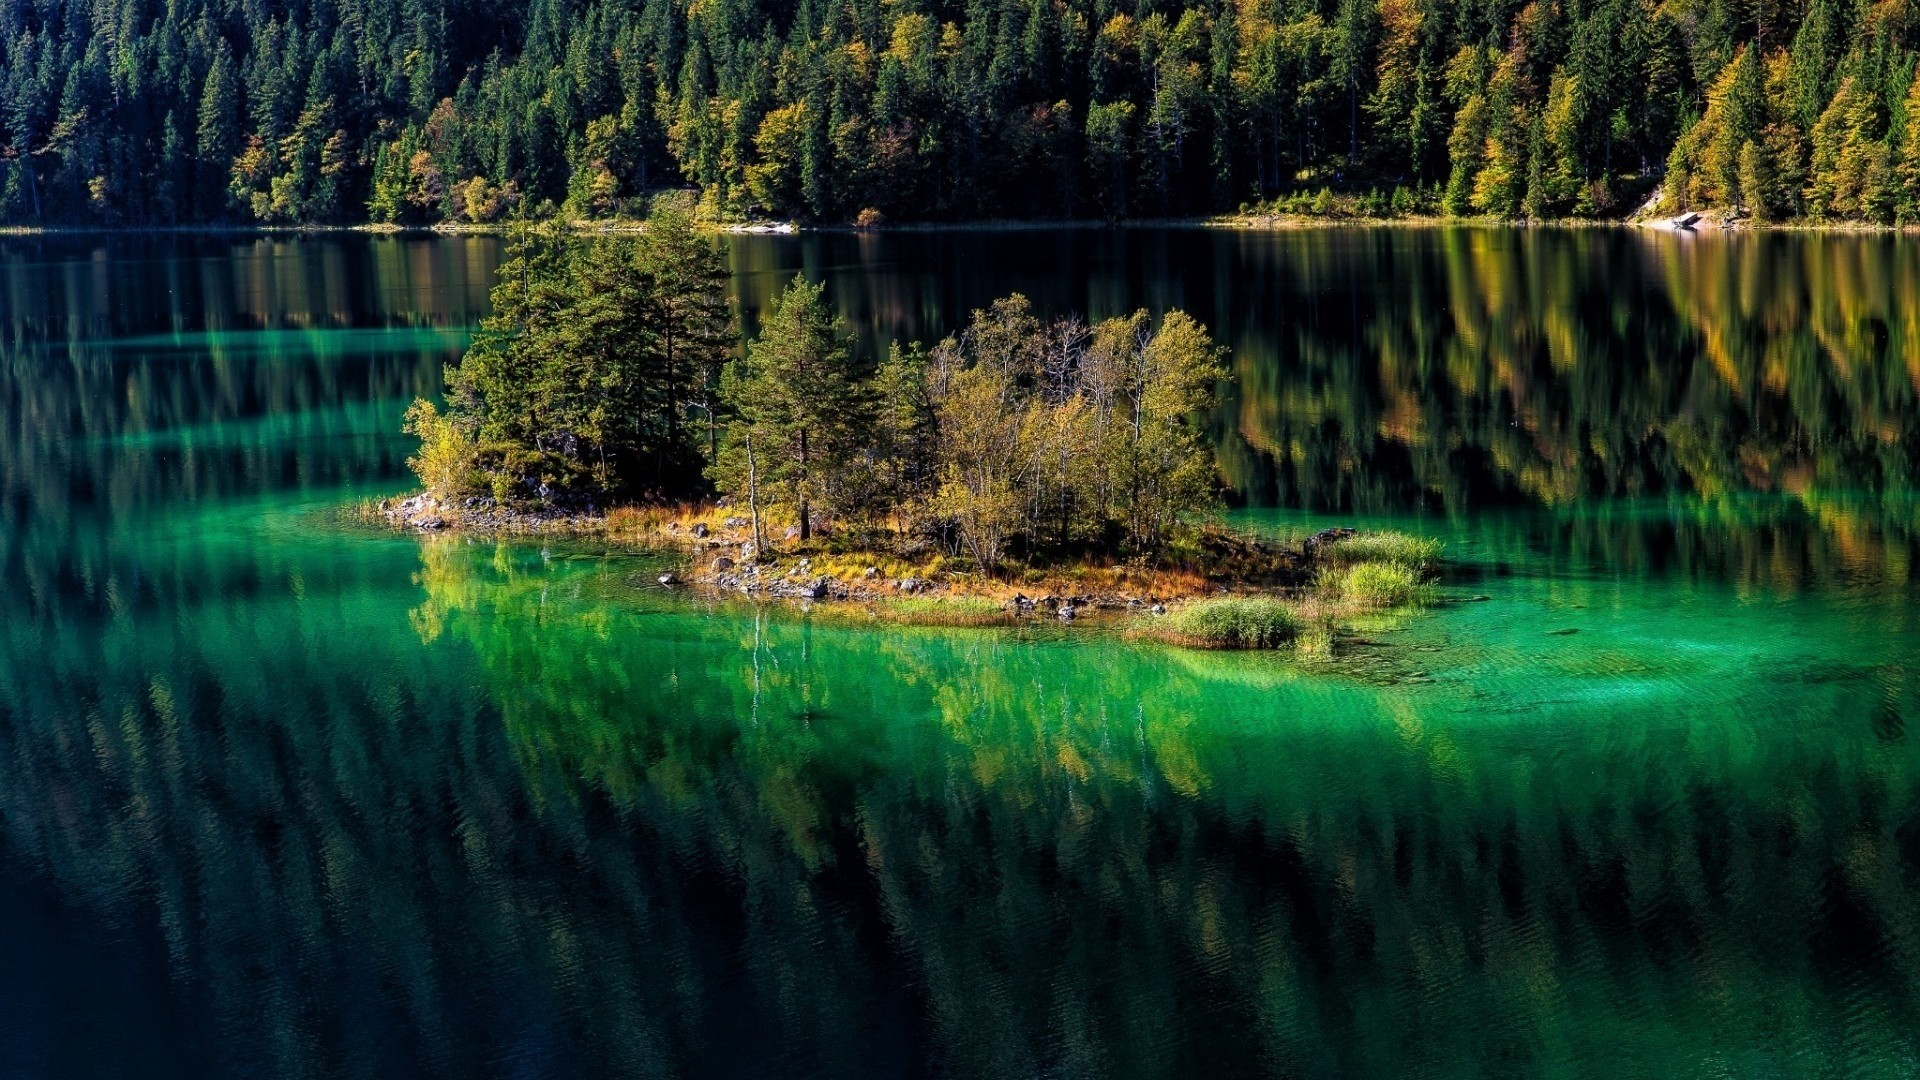 green water lake hd wallpaper background